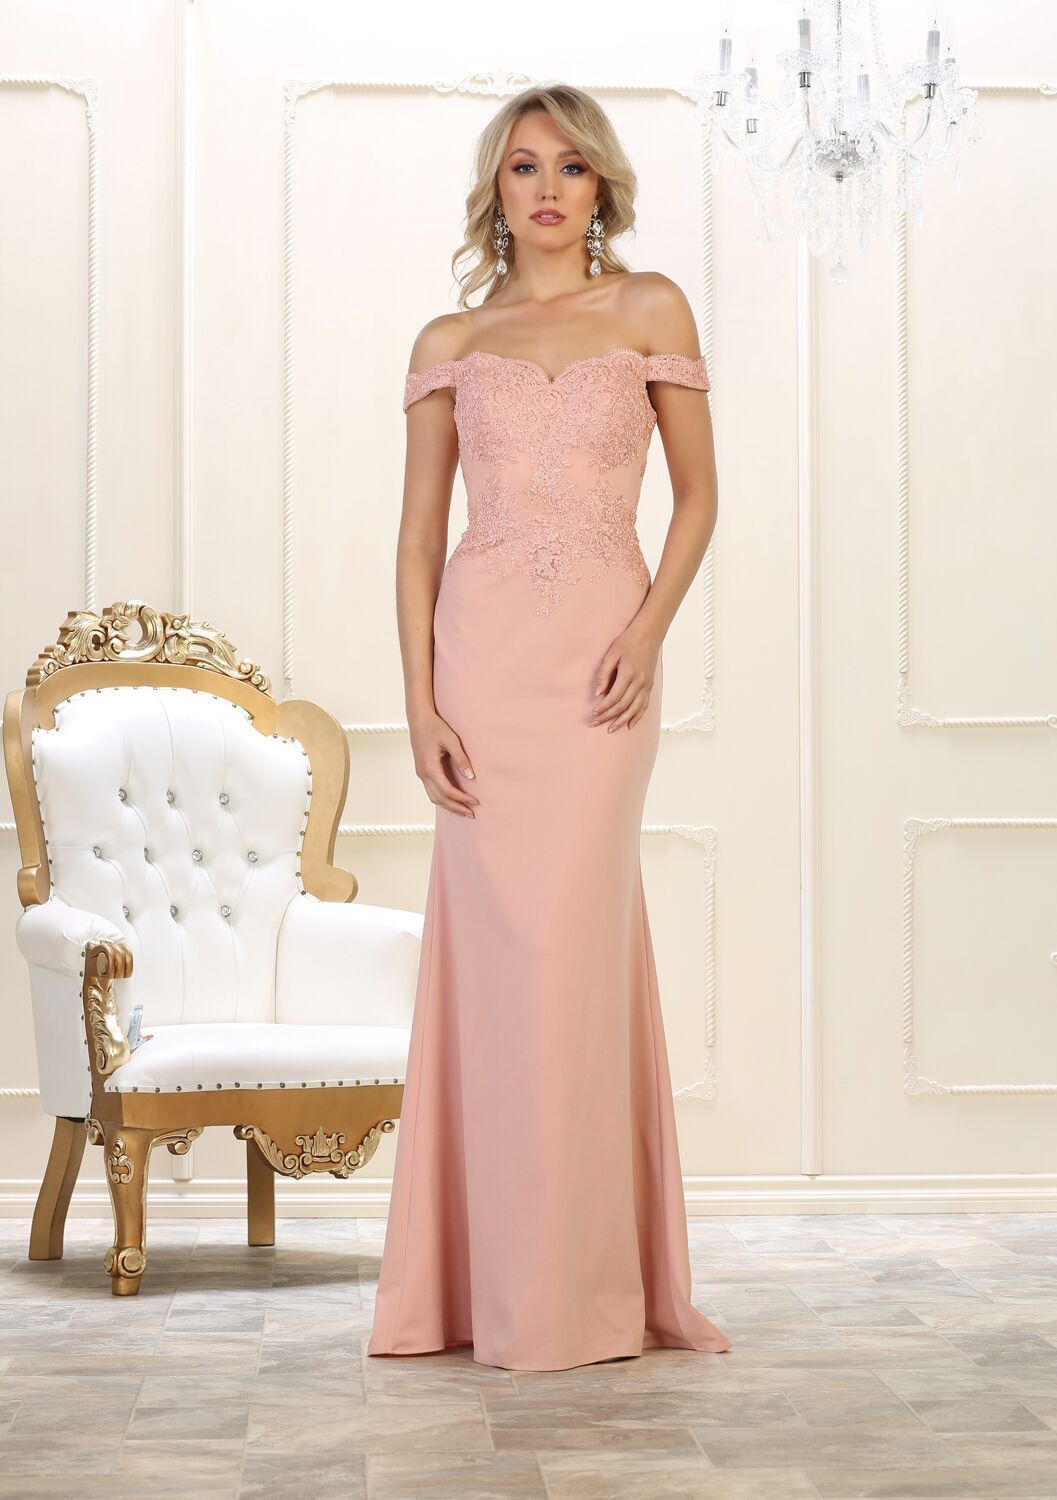 Long formal prom dress plus size evening gown in wedding